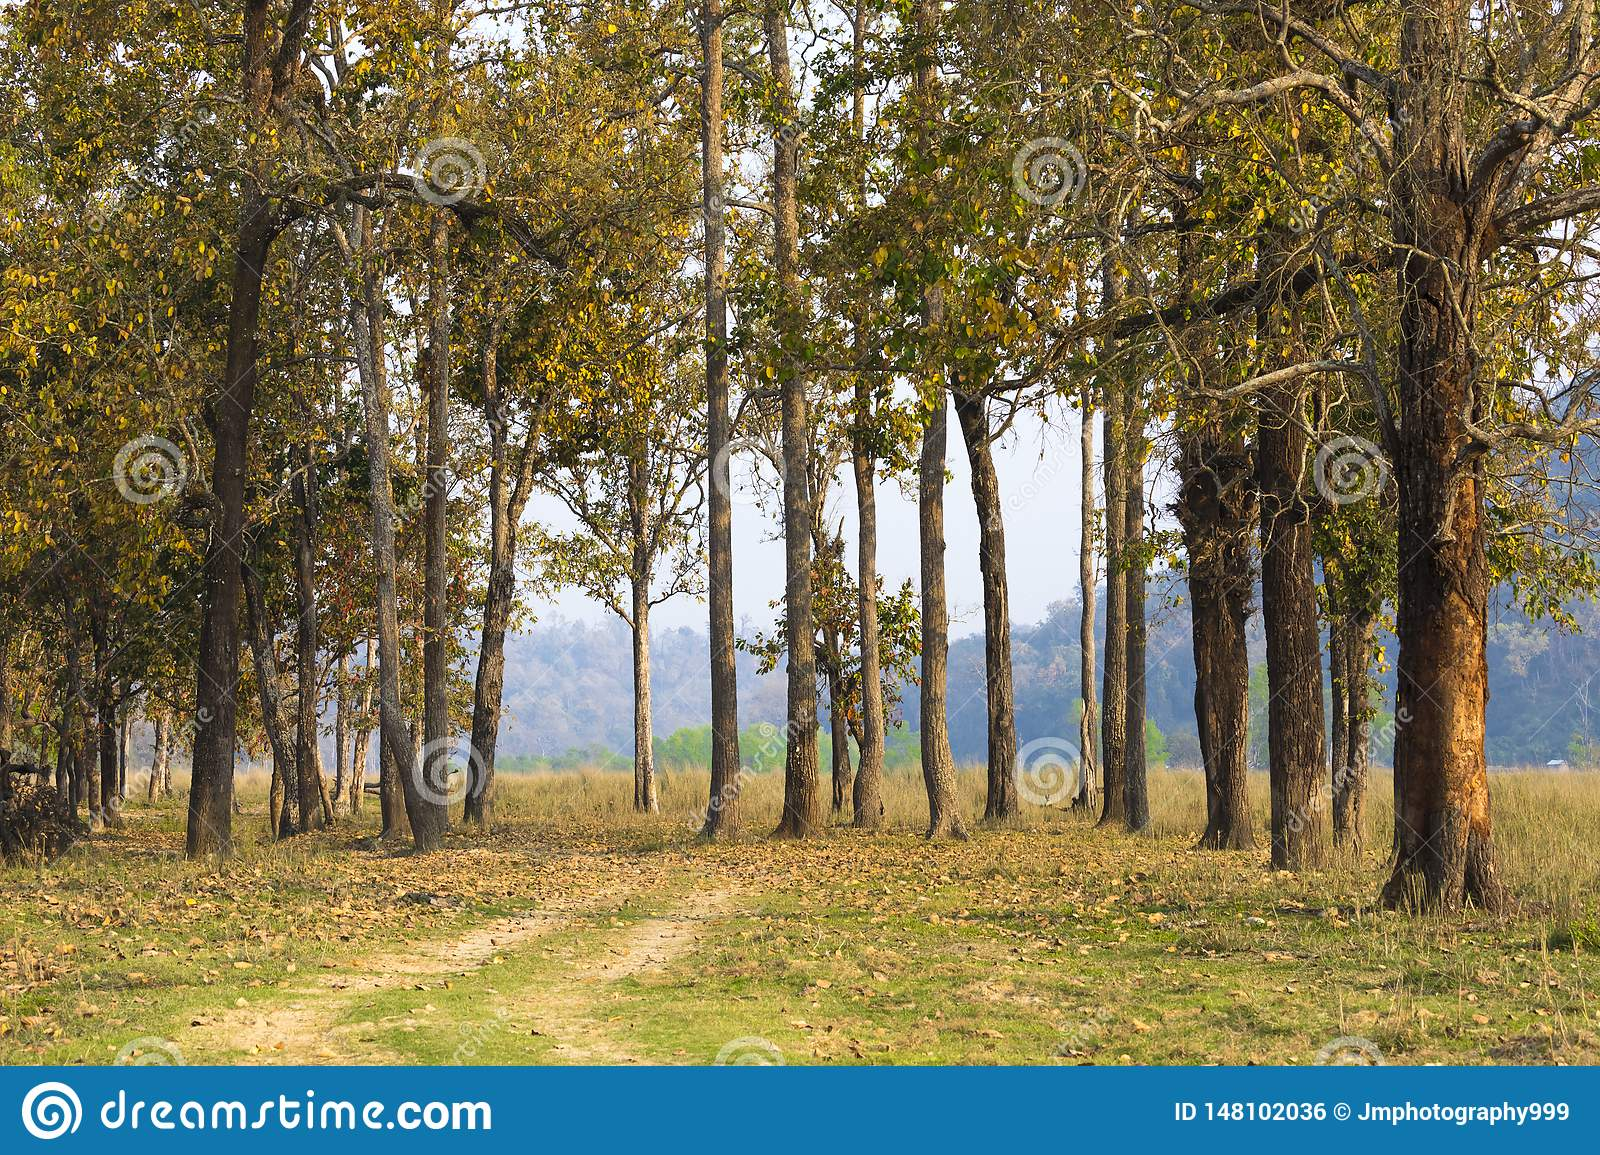 A beautiful view,group of Trees in chitwan National park Nepal